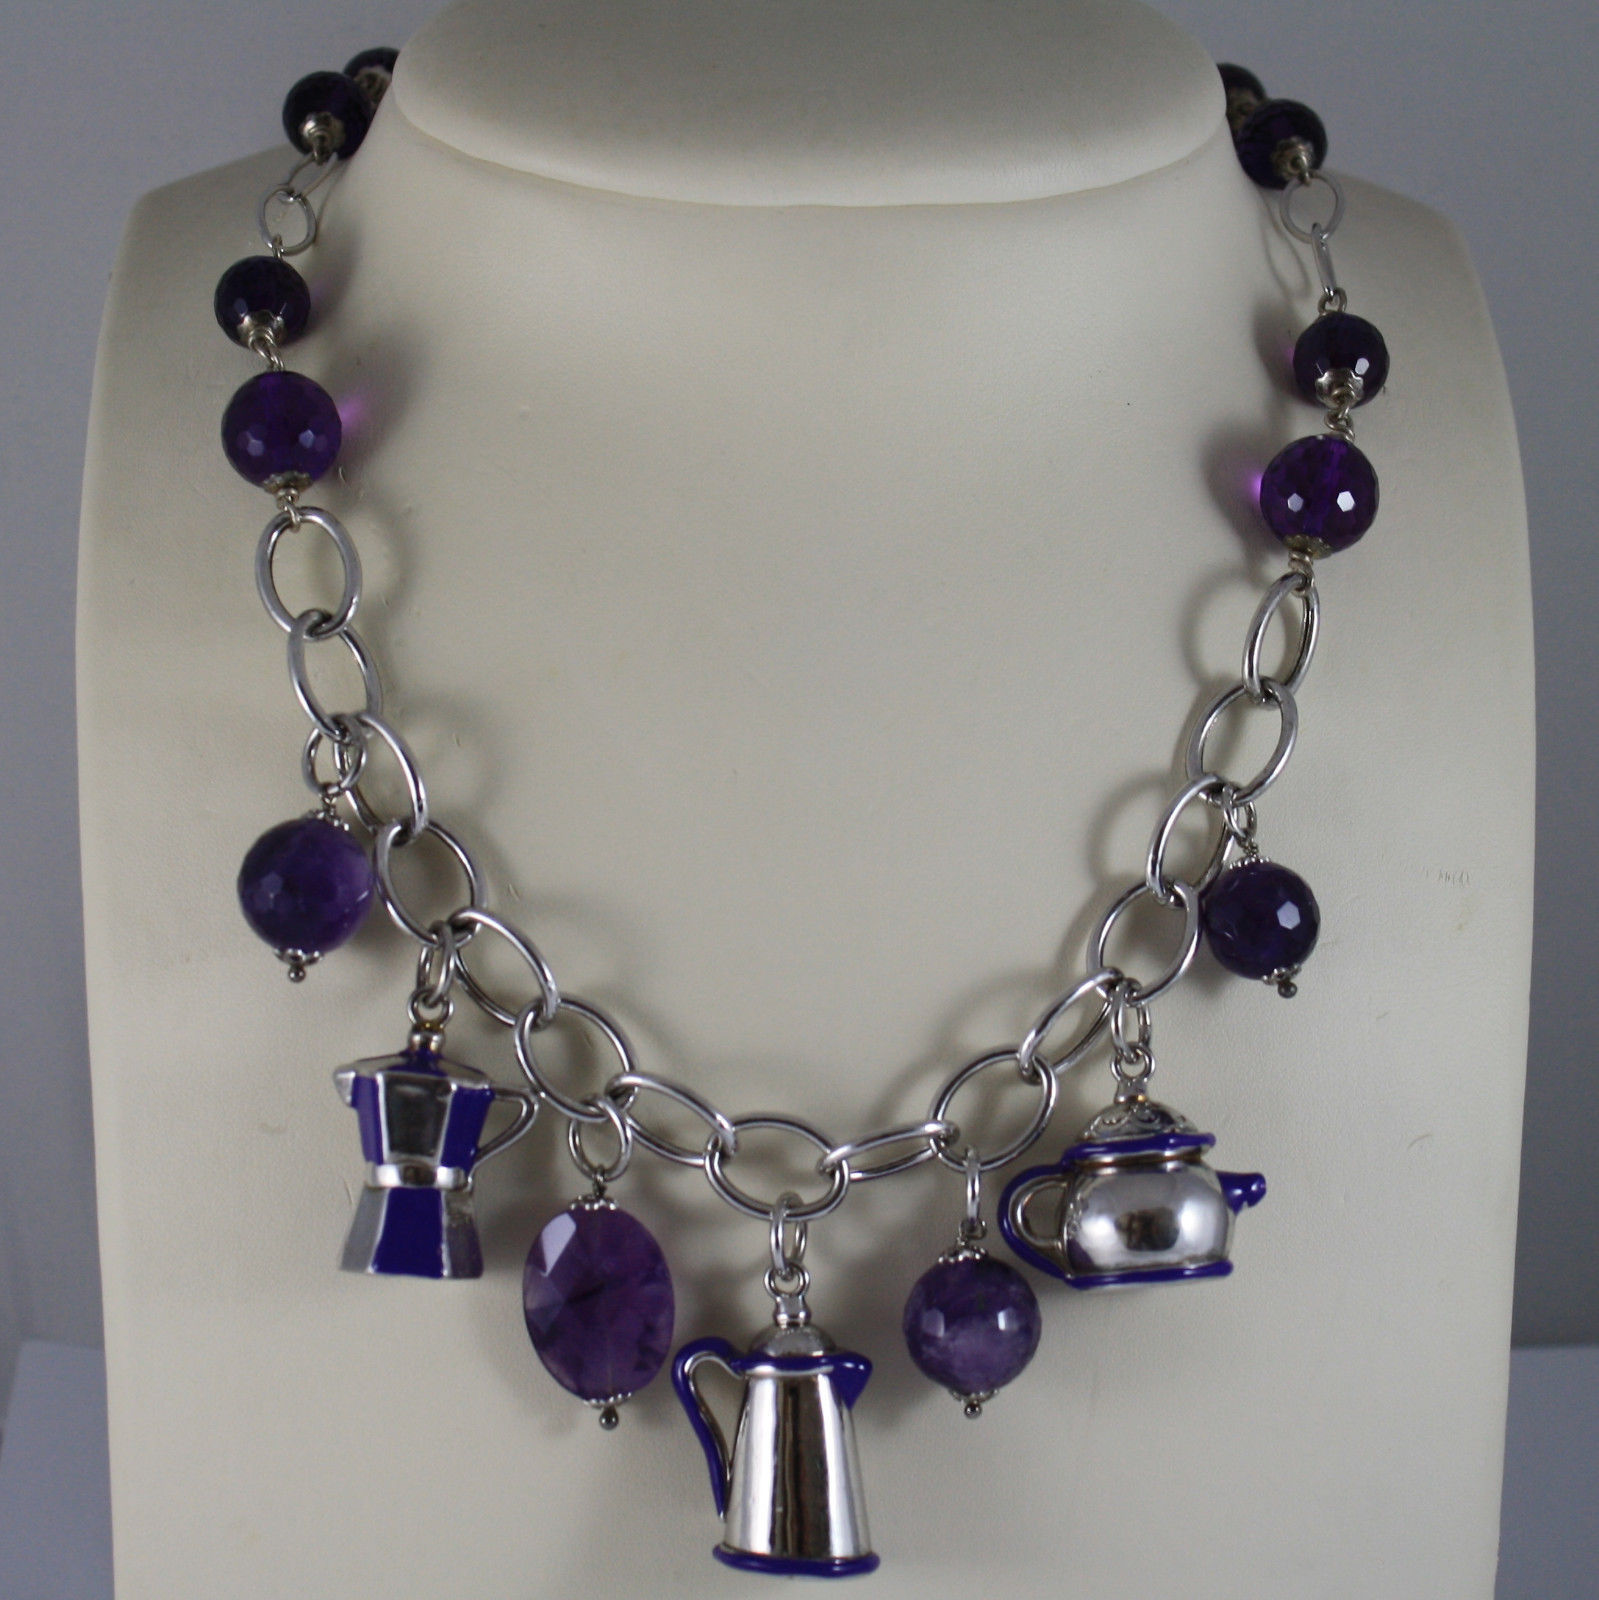 .925 RHODIUM SILVER NECKLACE WITH PURPLE CRISTALS, AMETHYST AND ENAMELLED CHARMS